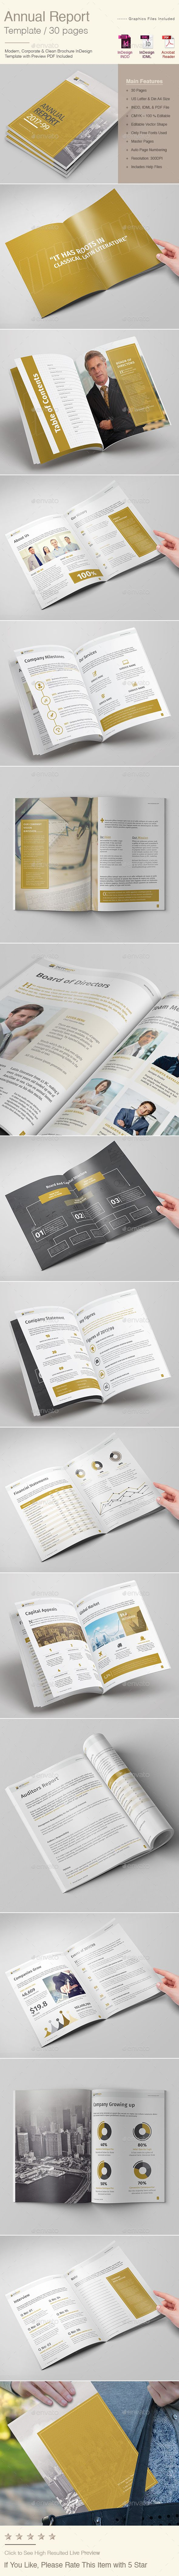 Annual Report — InDesign INDD #business #report • Download ➝ https://graphicriver.net/item/annual-report/19851805?ref=pxcr